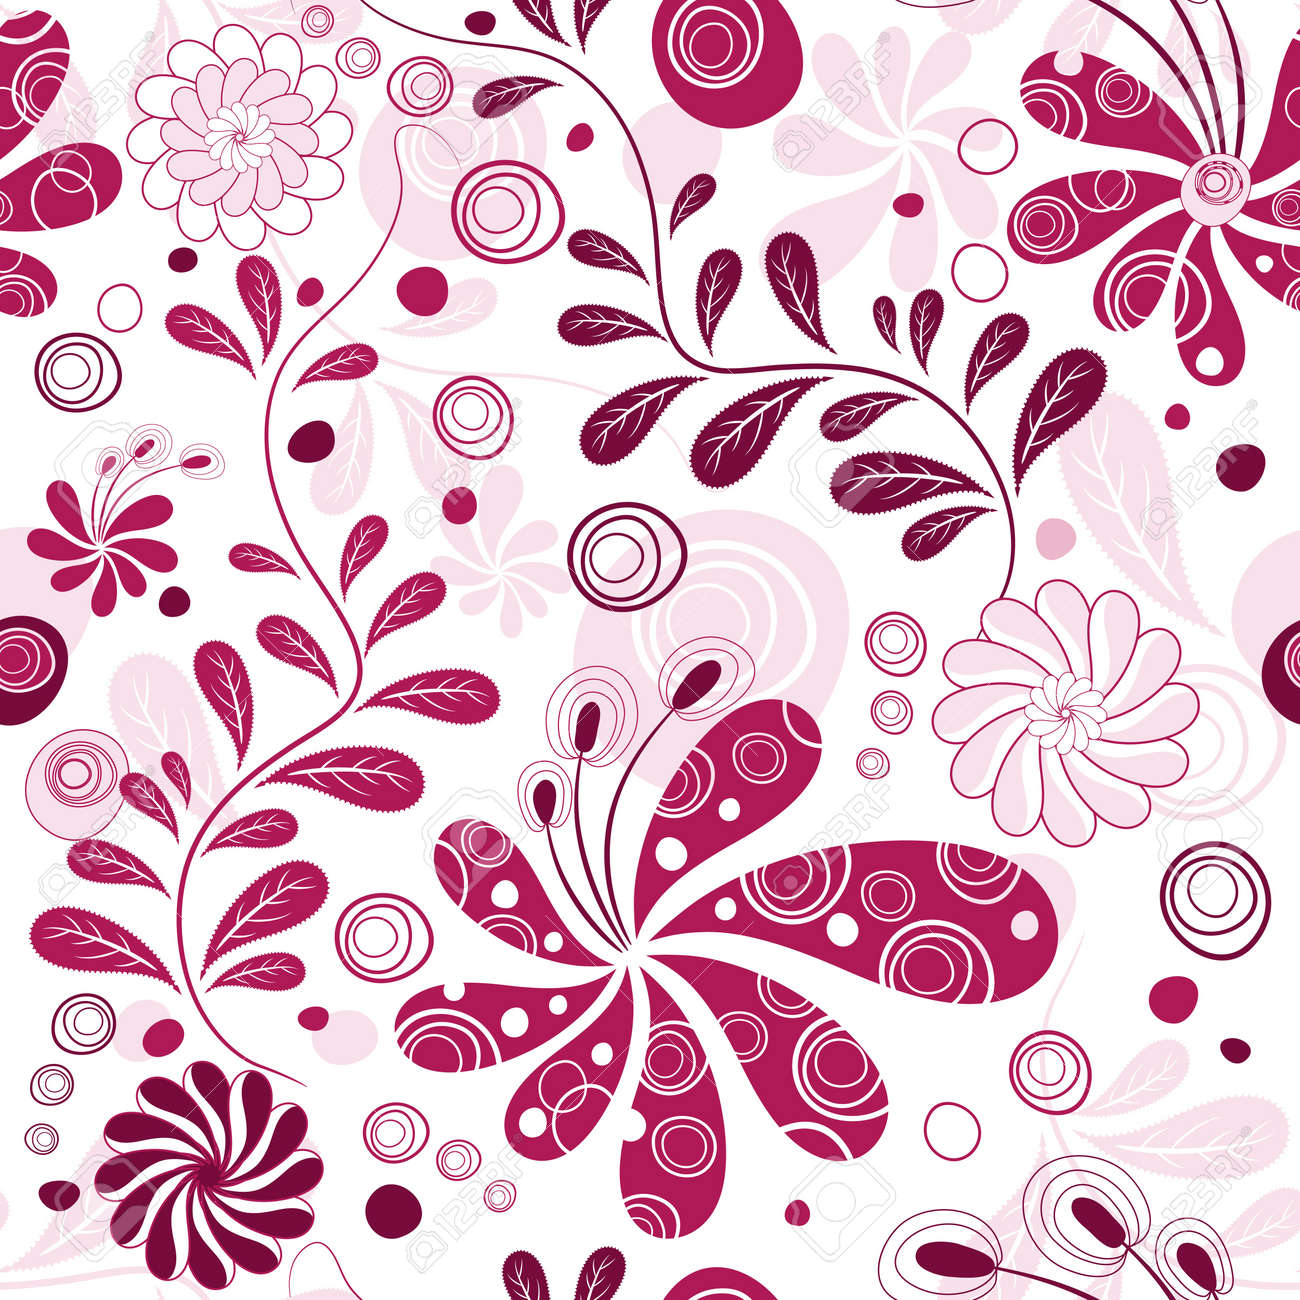 White And Purple Effortless Floral Wallpaper With Flowers Vector